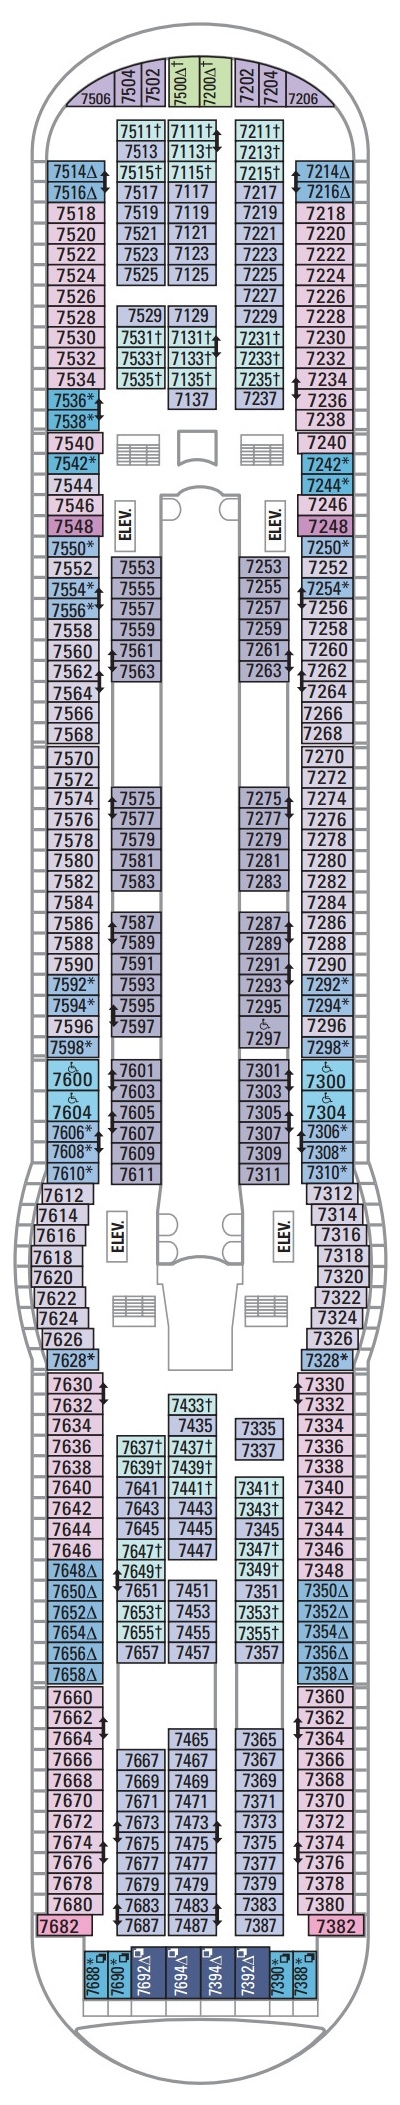 Adventure Of The Seas Deck 7 layout